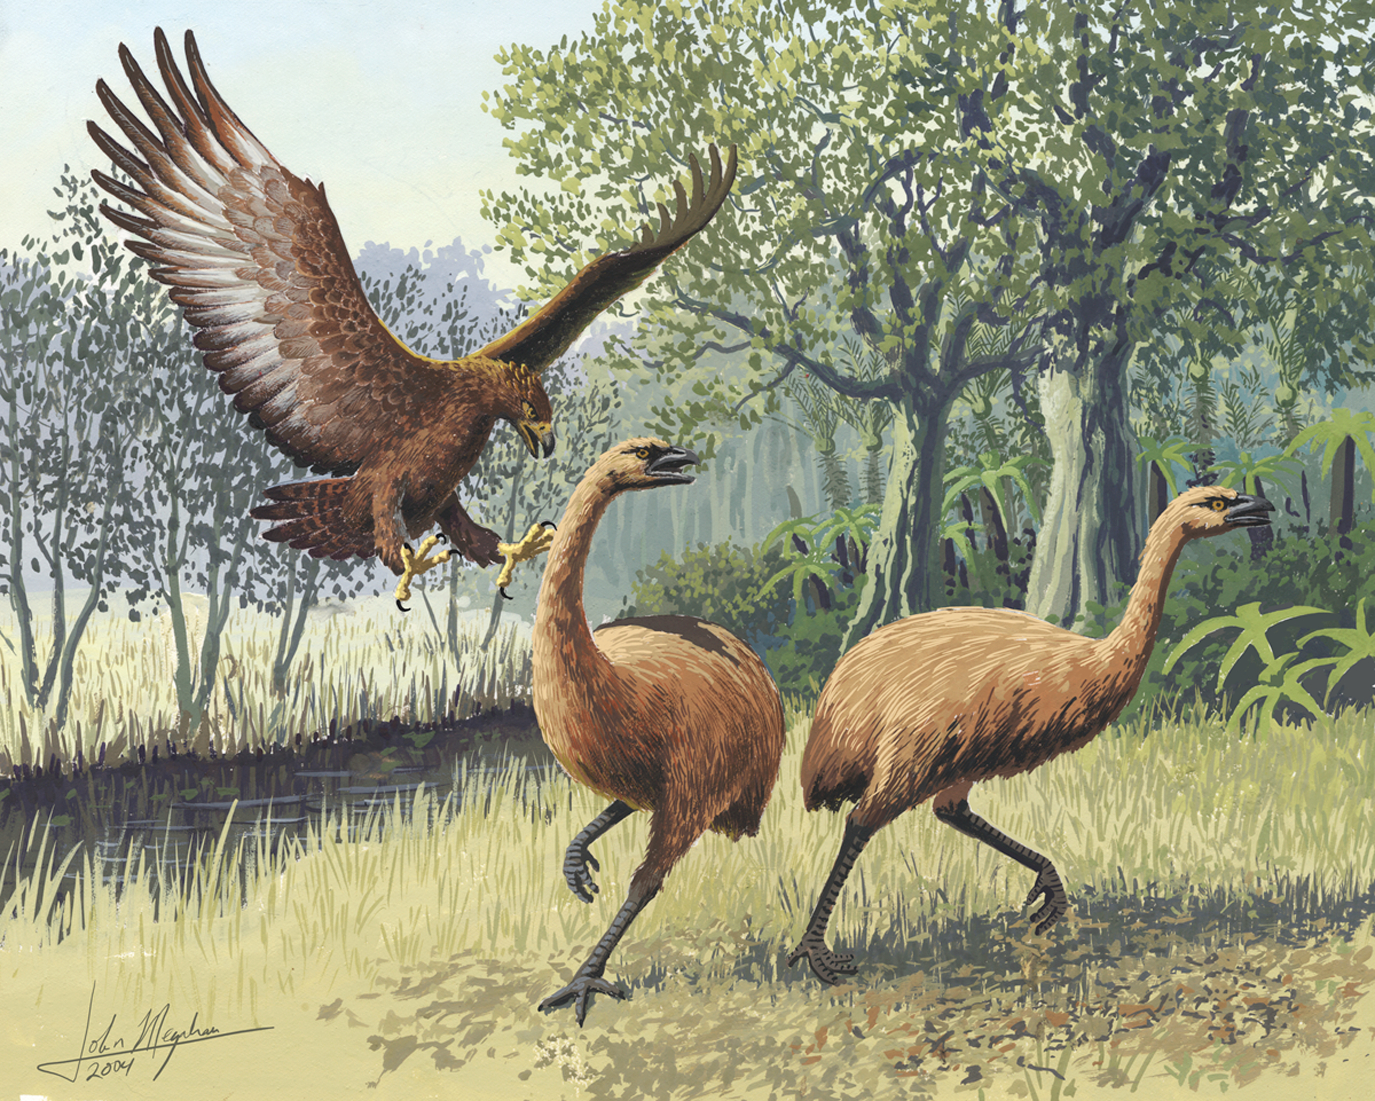 Haast's Eagle was the largest eagle known to have existed. Here it is pictured attacking moa (also extinct).  Image by John Megahan/PLoS Biology (CC BY 2.5).